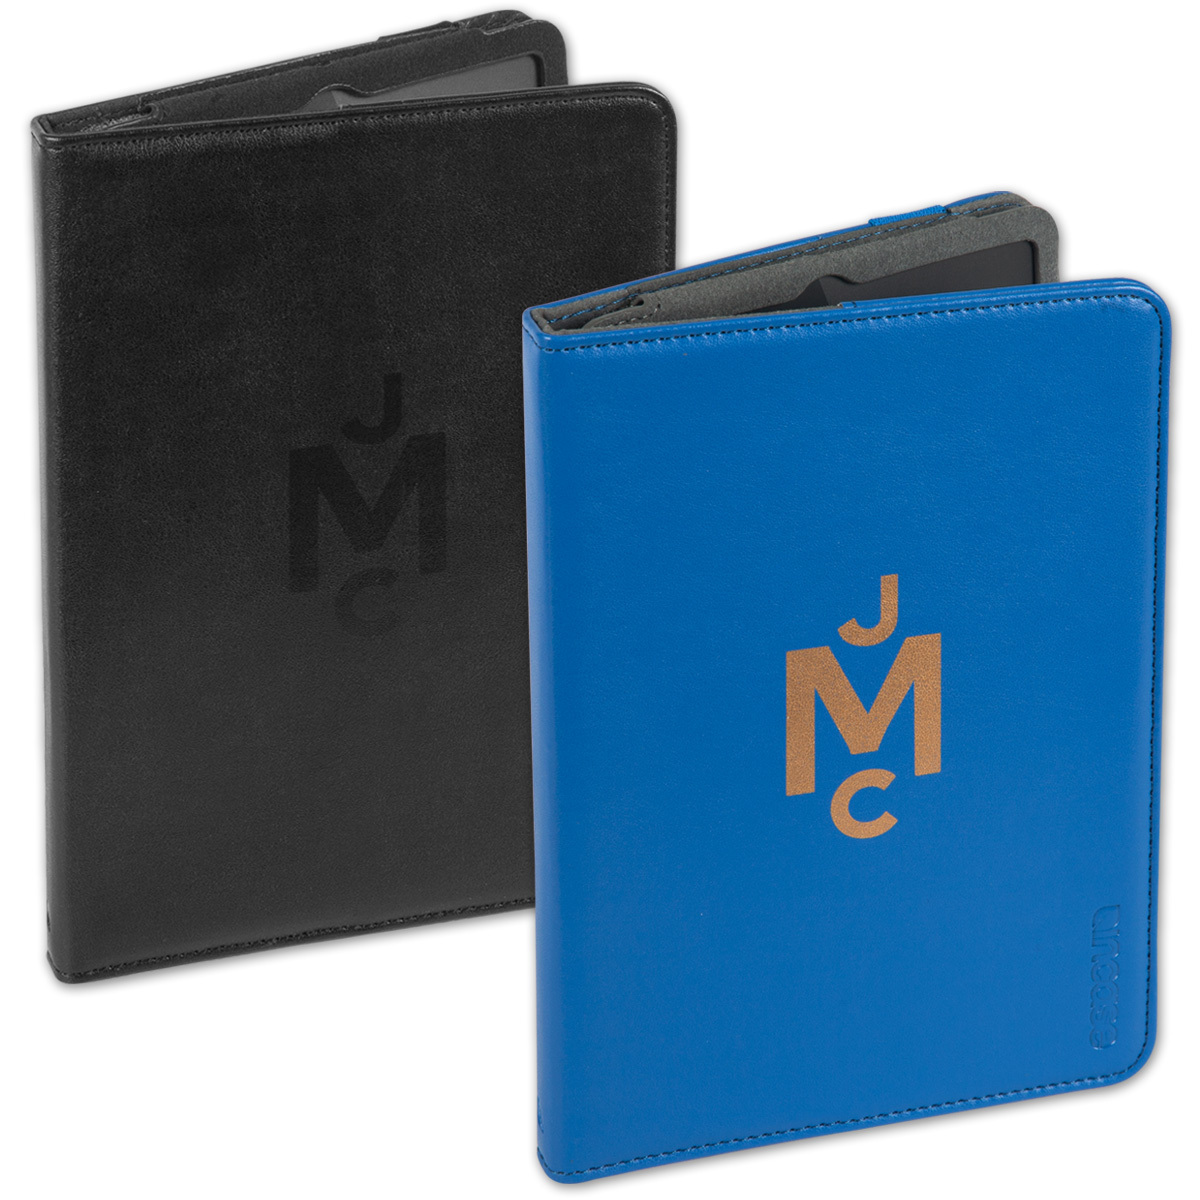 JMC Monogram Folio for iPad Mini